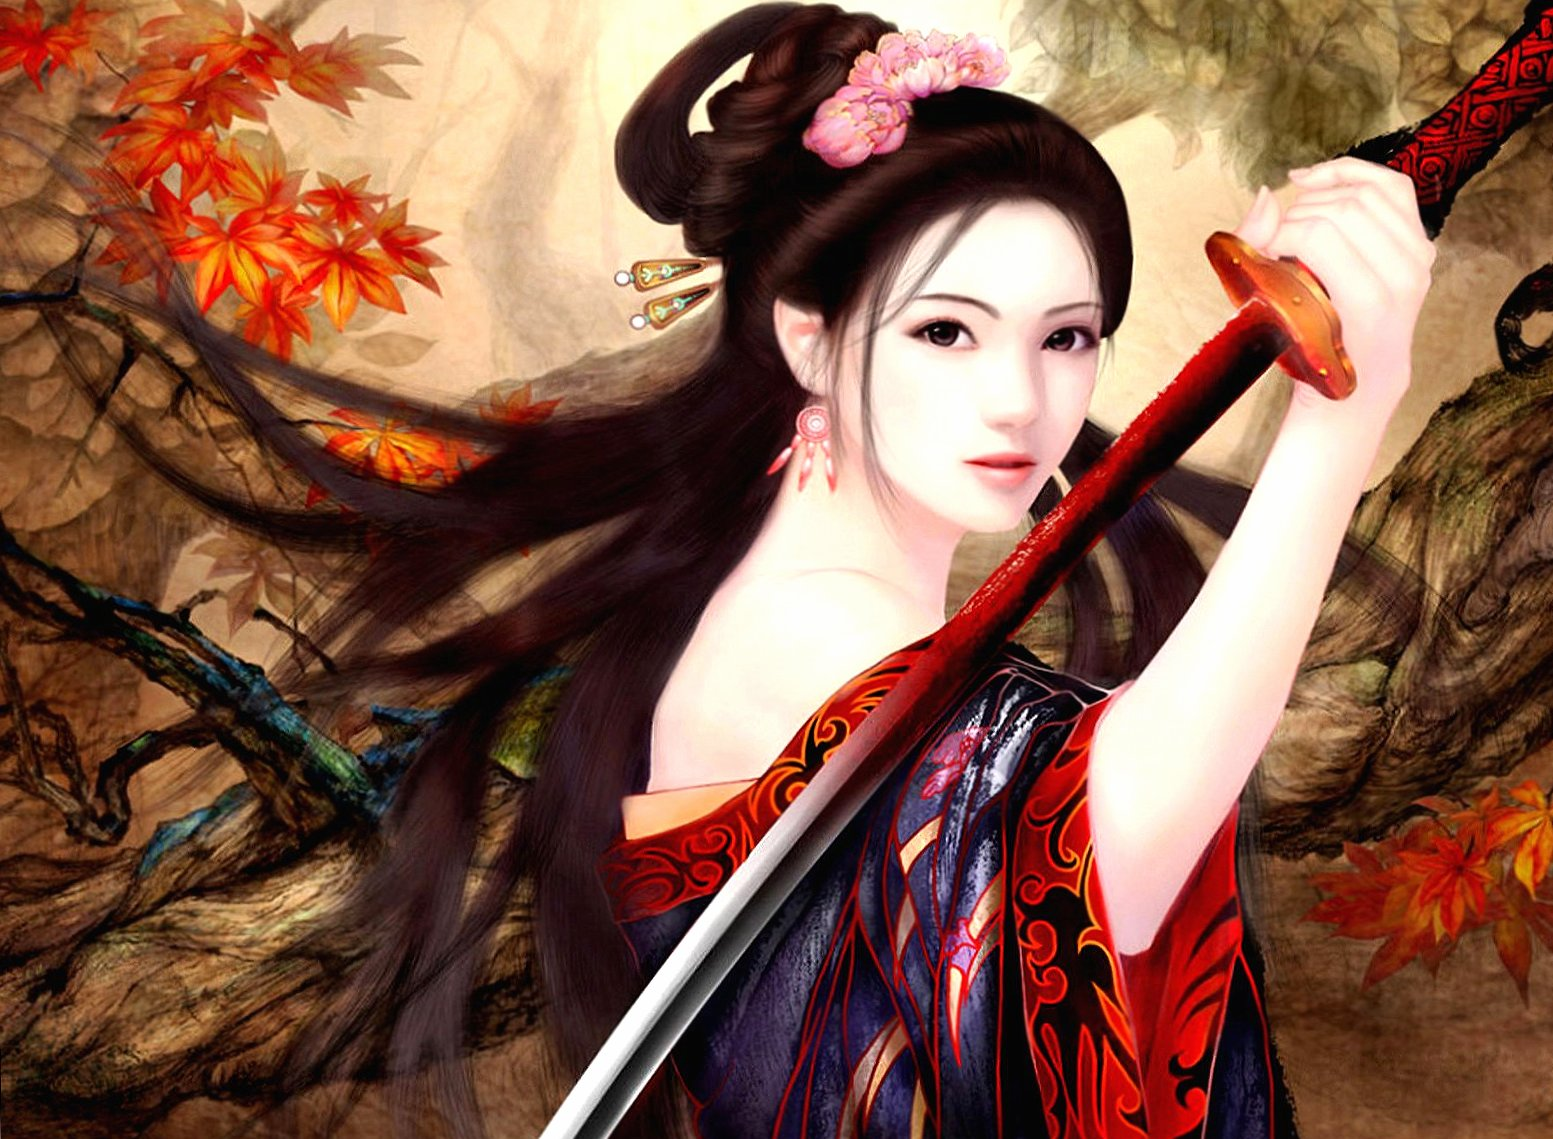 Samurai girl at 1152 x 864 size wallpapers HD quality